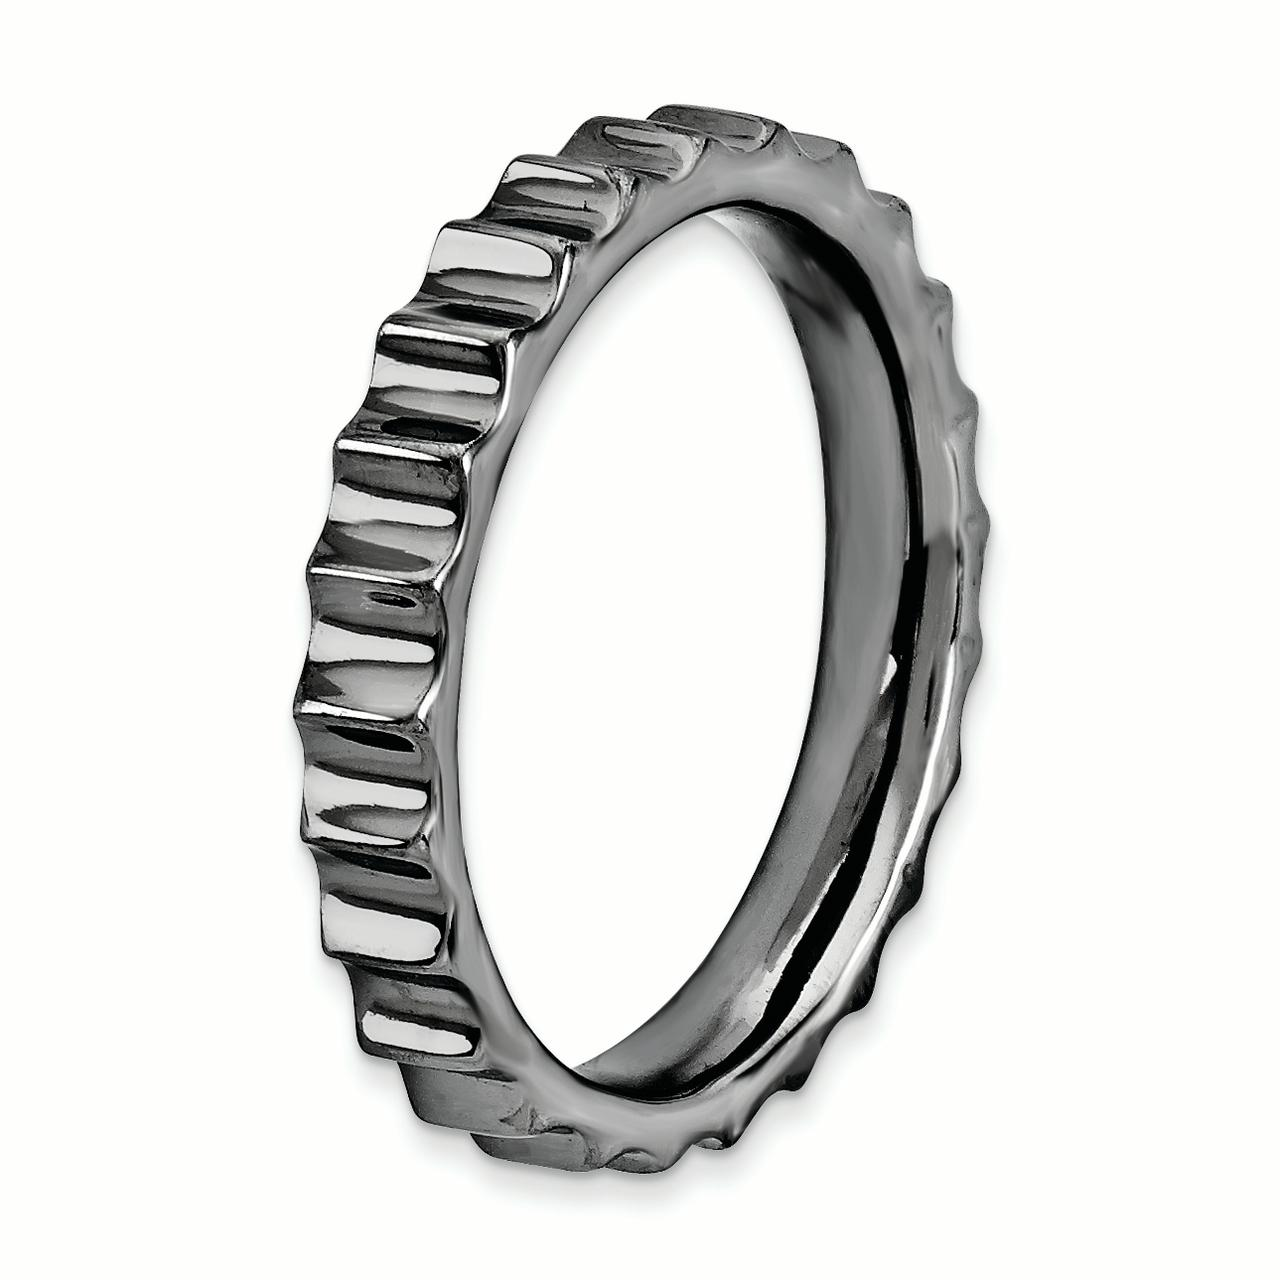 925 Sterling Silver Black Plated Band Ring Size 7.00 Stackable Textured Fine Jewelry Gifts For Women For Her - image 2 de 4